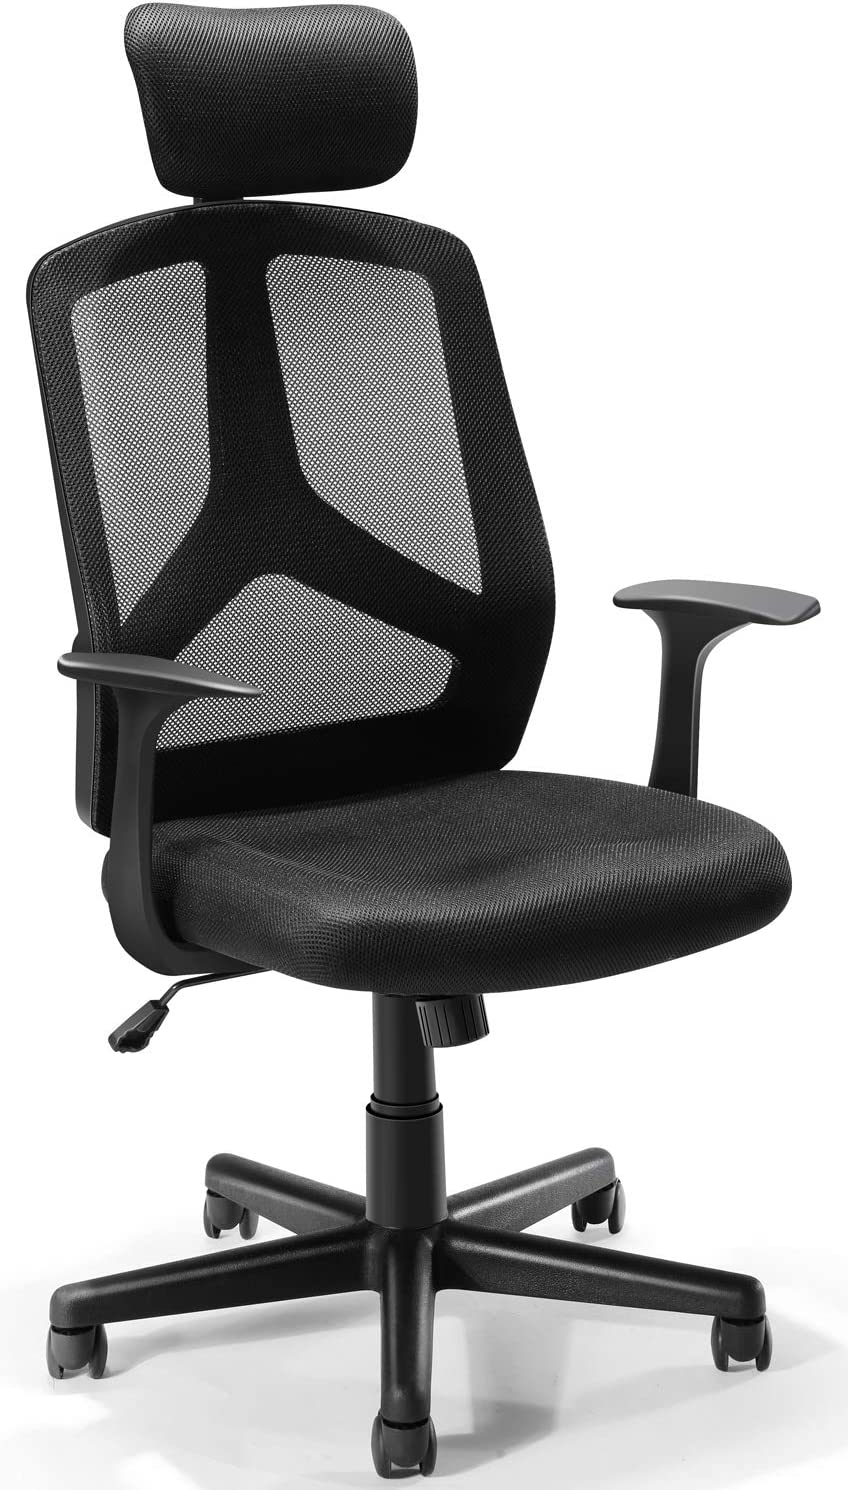 Ergonomic Mesh Chair, Tribesigns Office Chair Desk Chair with Breathable Mesh Seat, Adjustable Headrest for Home Office (Black Upgraded)